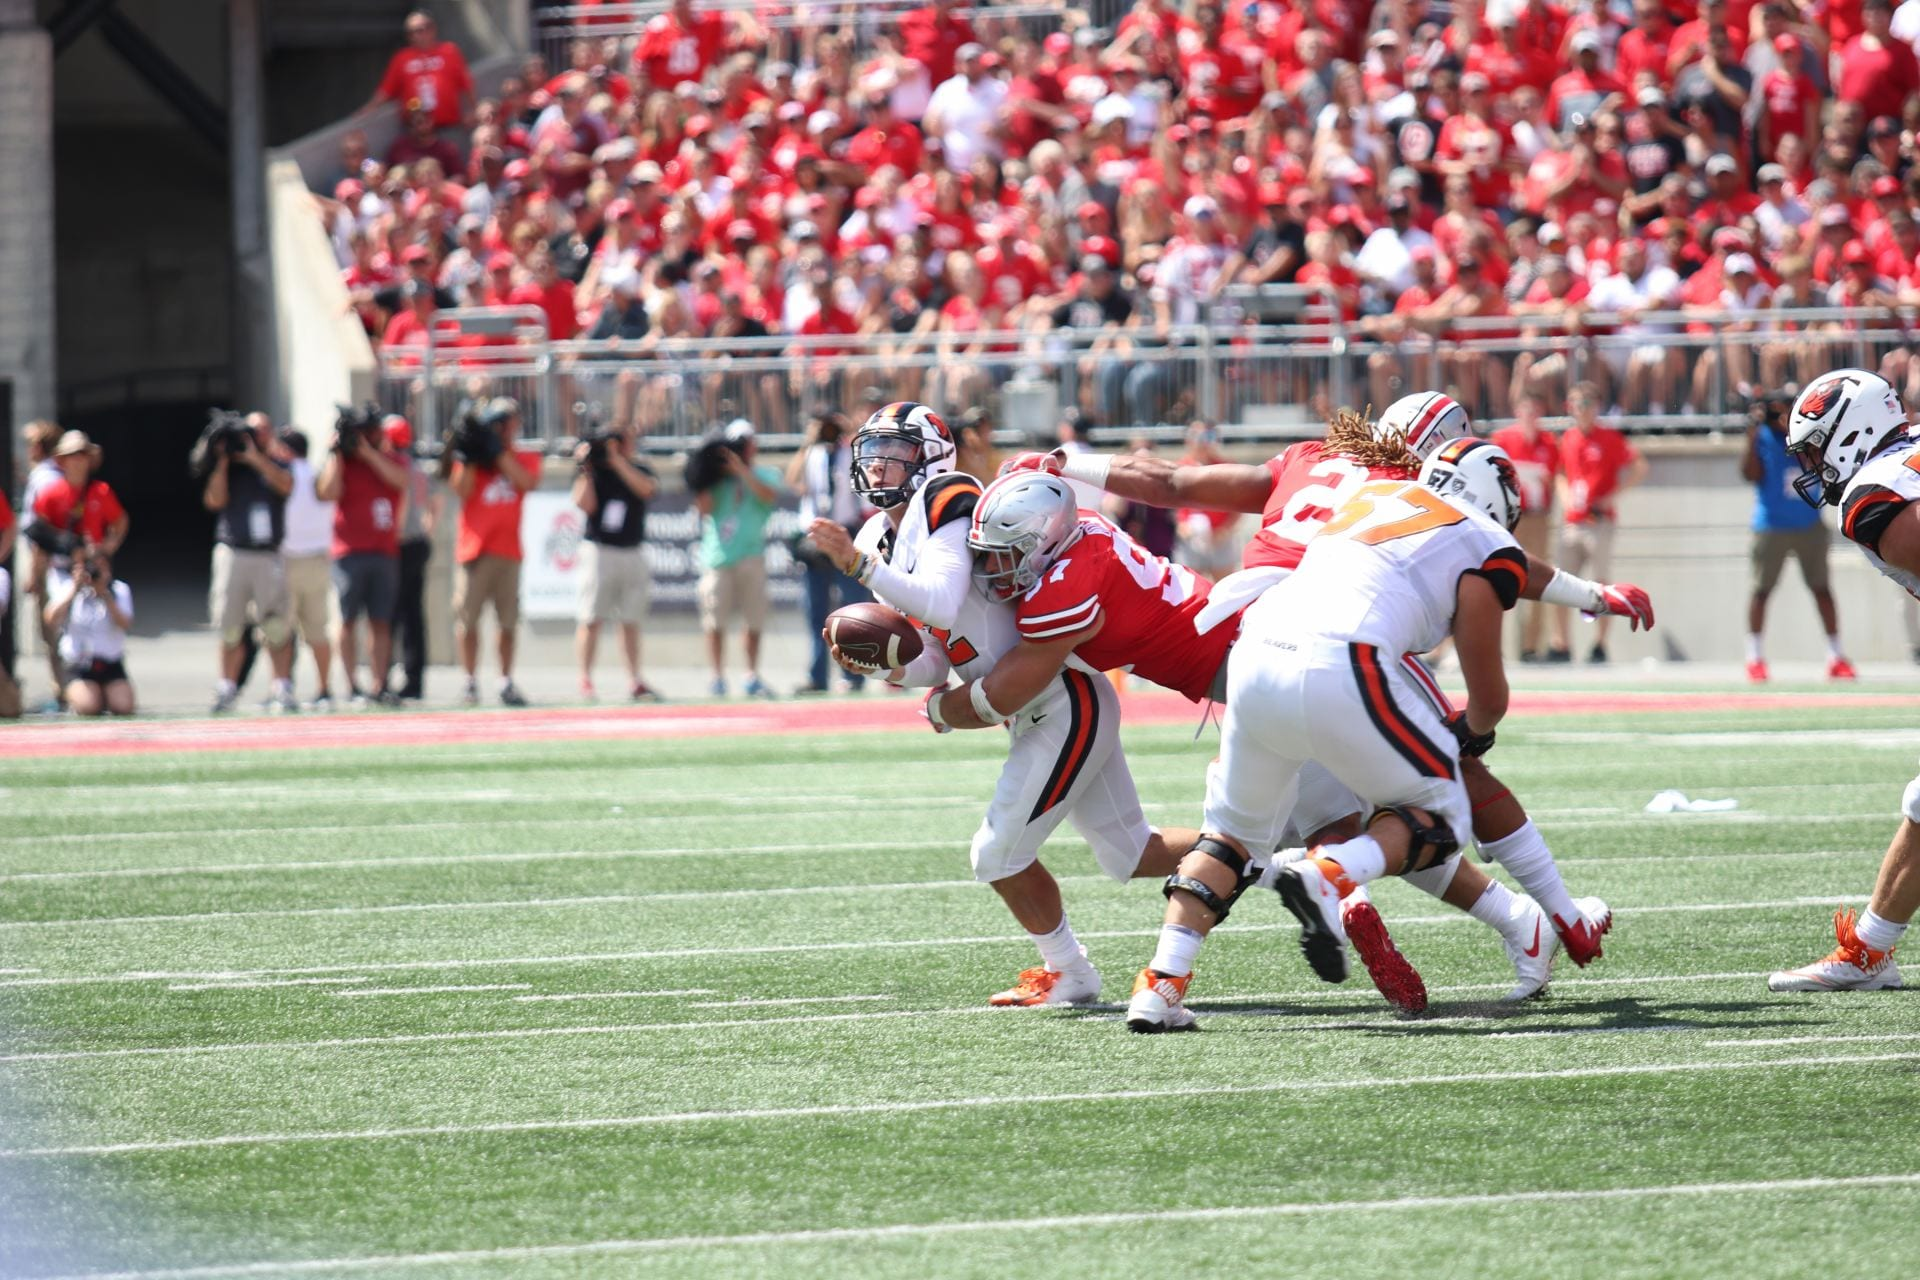 ee133a160ec Junior defensive end Nick Bosa sacks redshirt sophomore quarterback Conor  Blount in the game between Ohio State and Oregon State on Sept. 1.